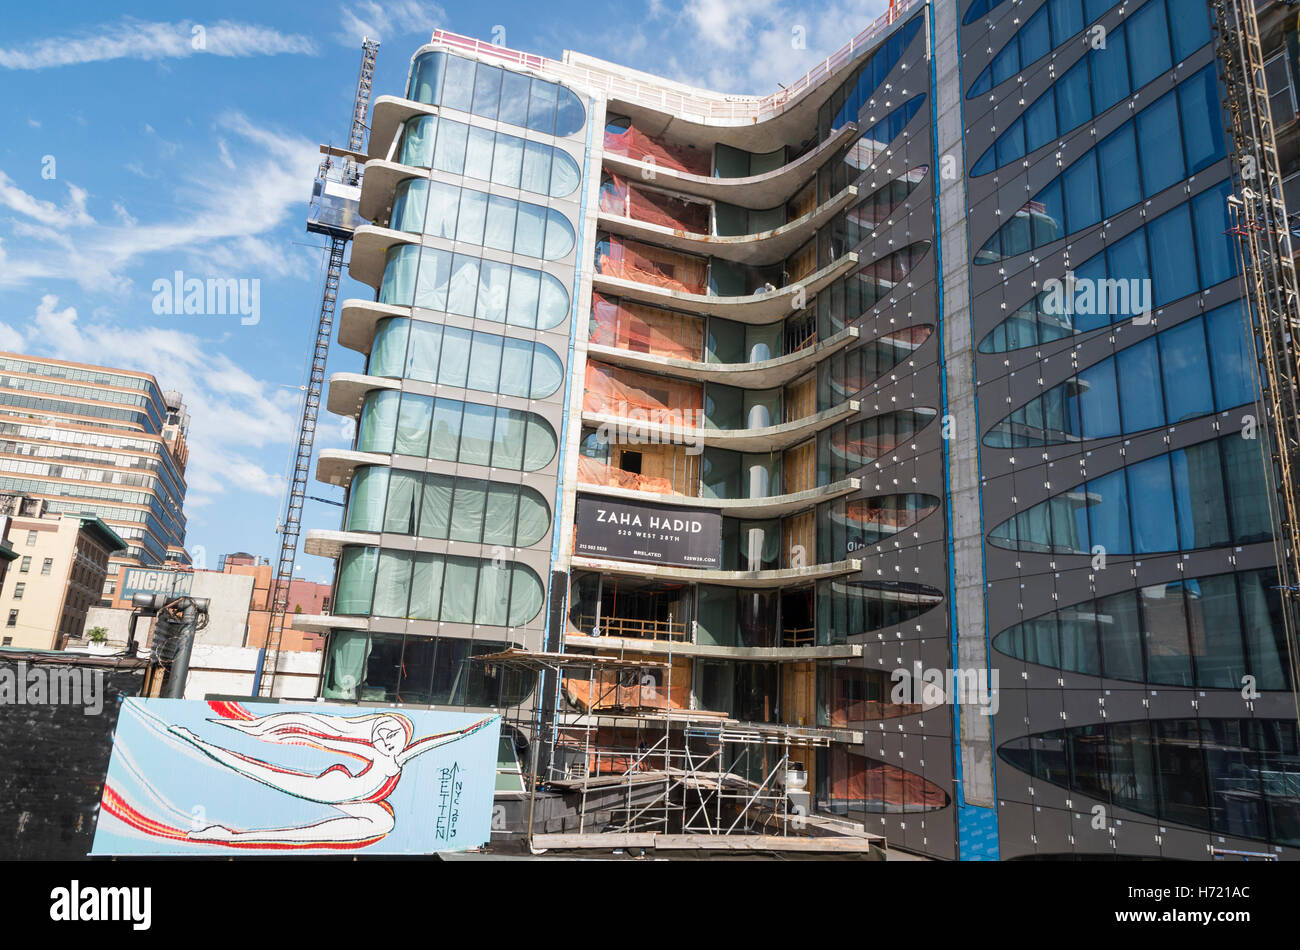 520 West 28th Street condominium residences designed by architect Zaha Hadid under construction in Chelsea, NYC Stock Photo